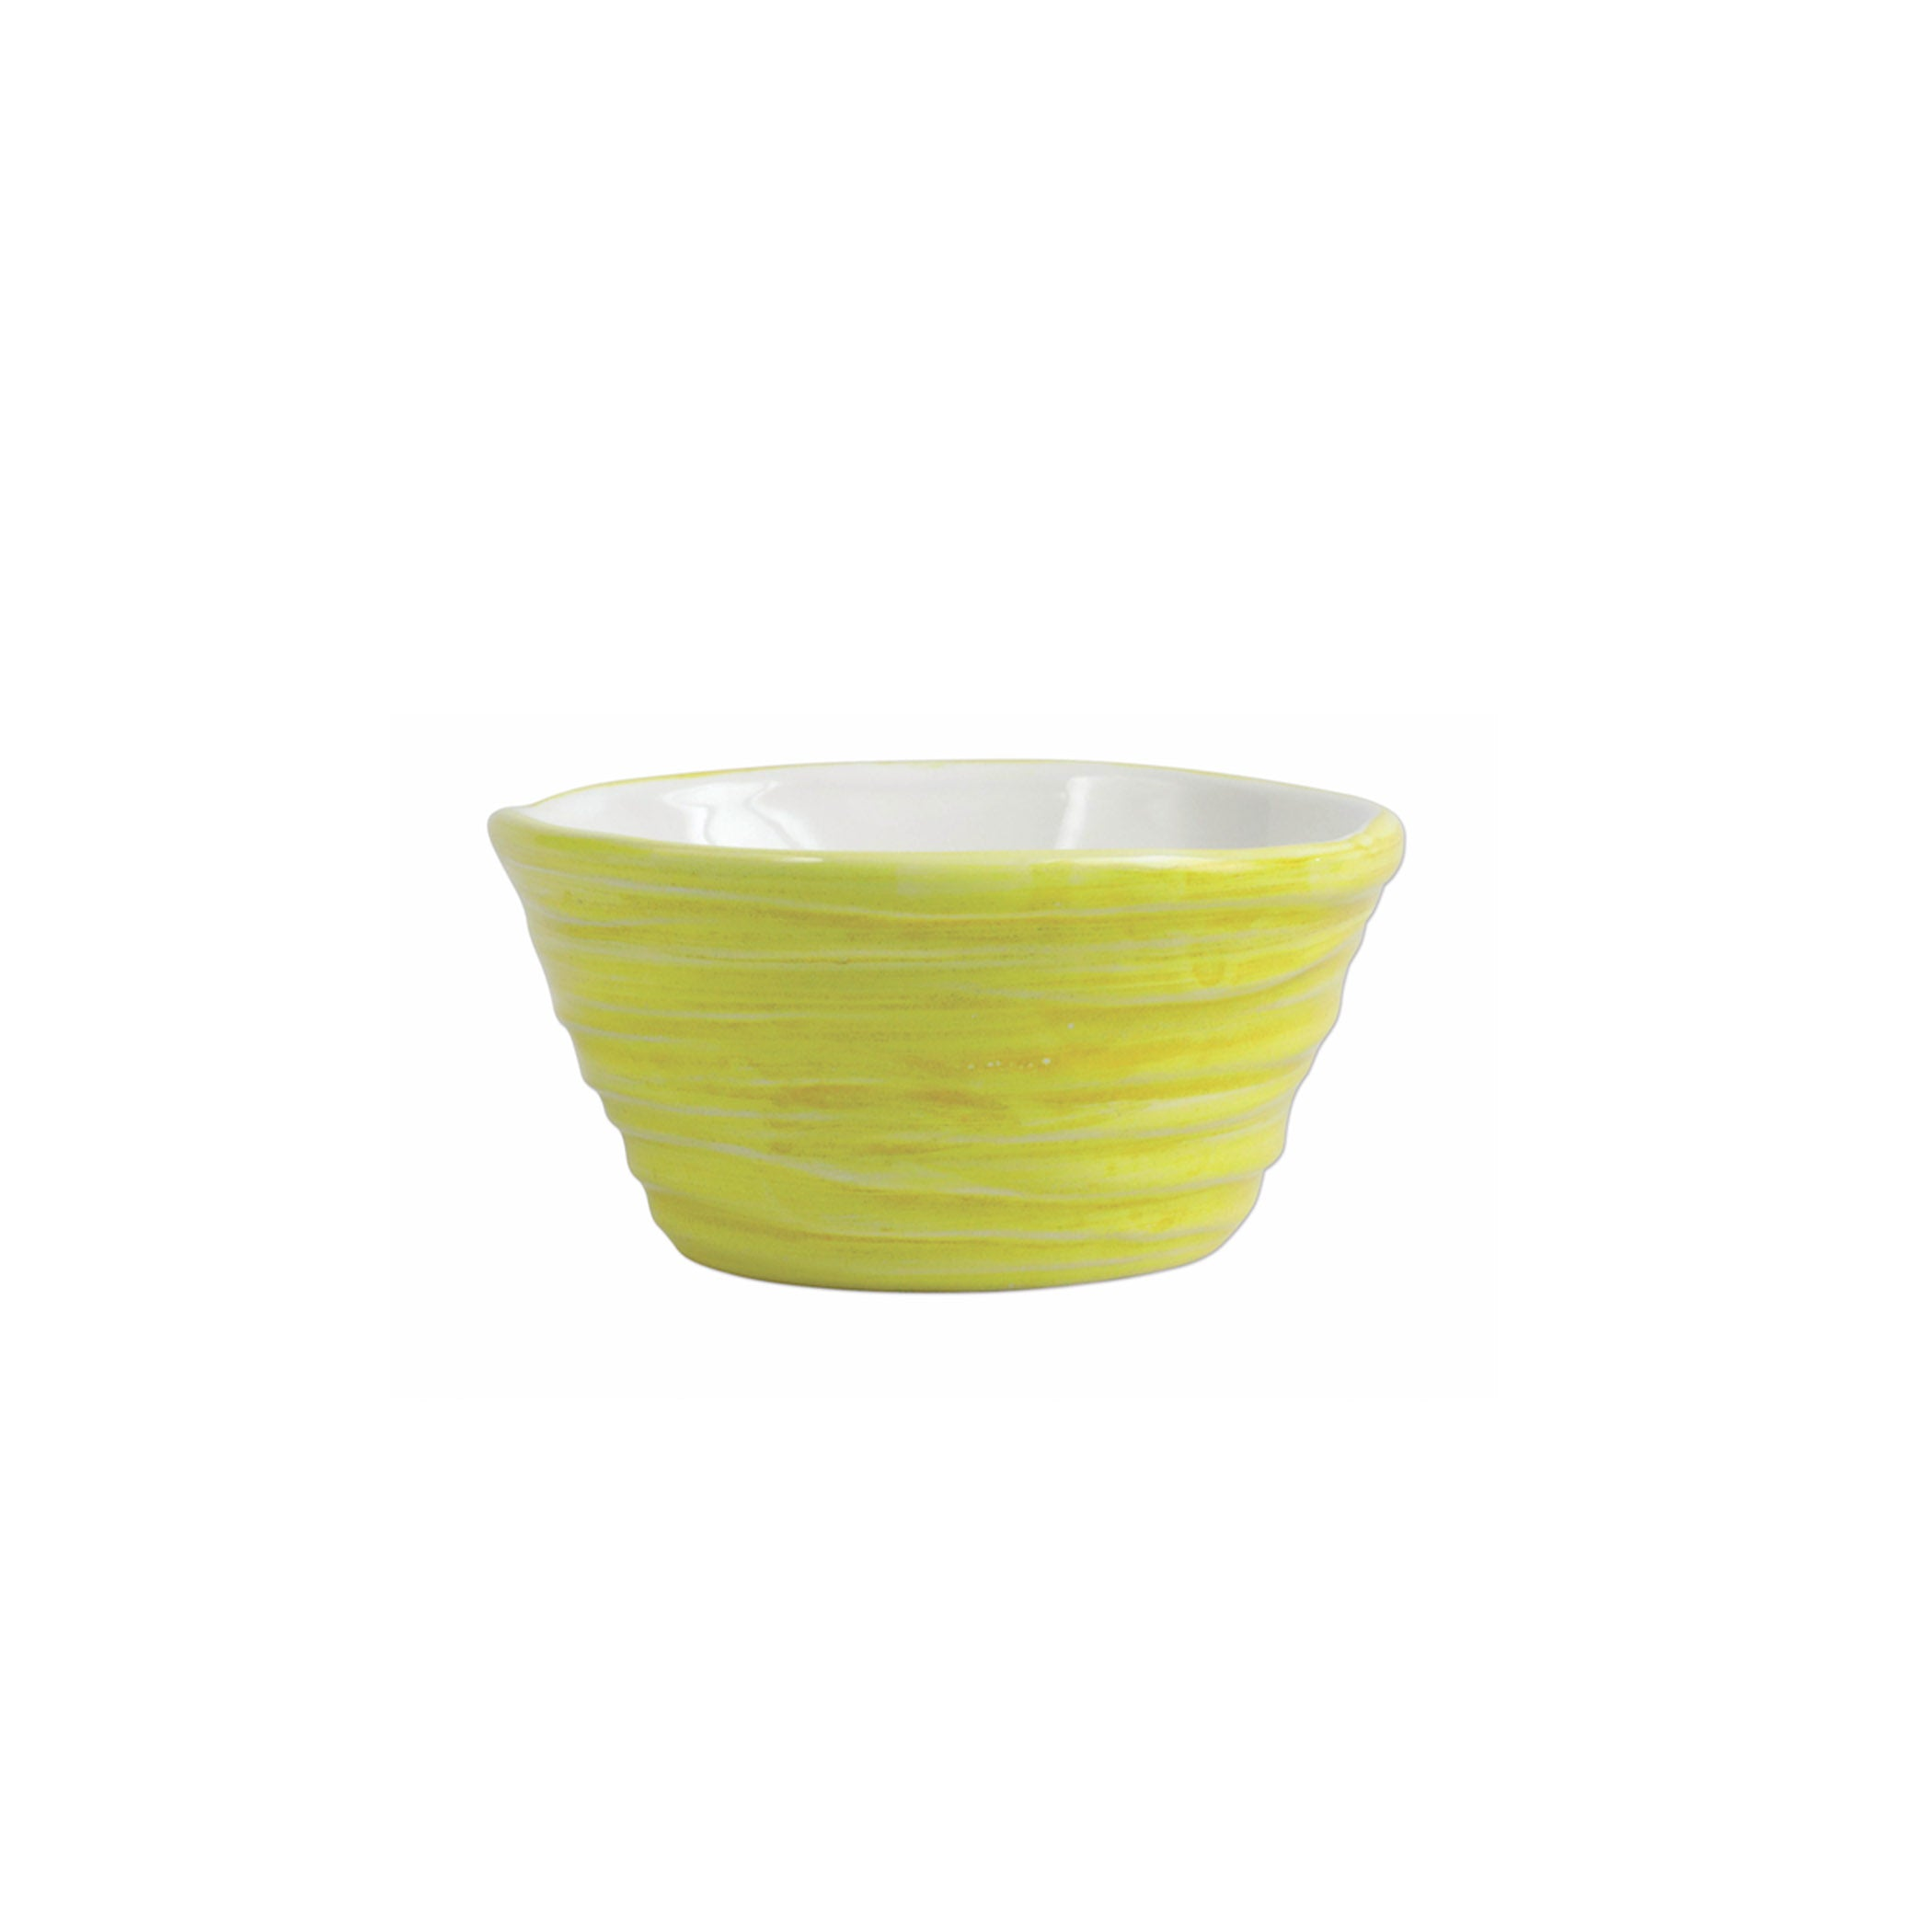 Pesci Colorati Yellow Ramekin